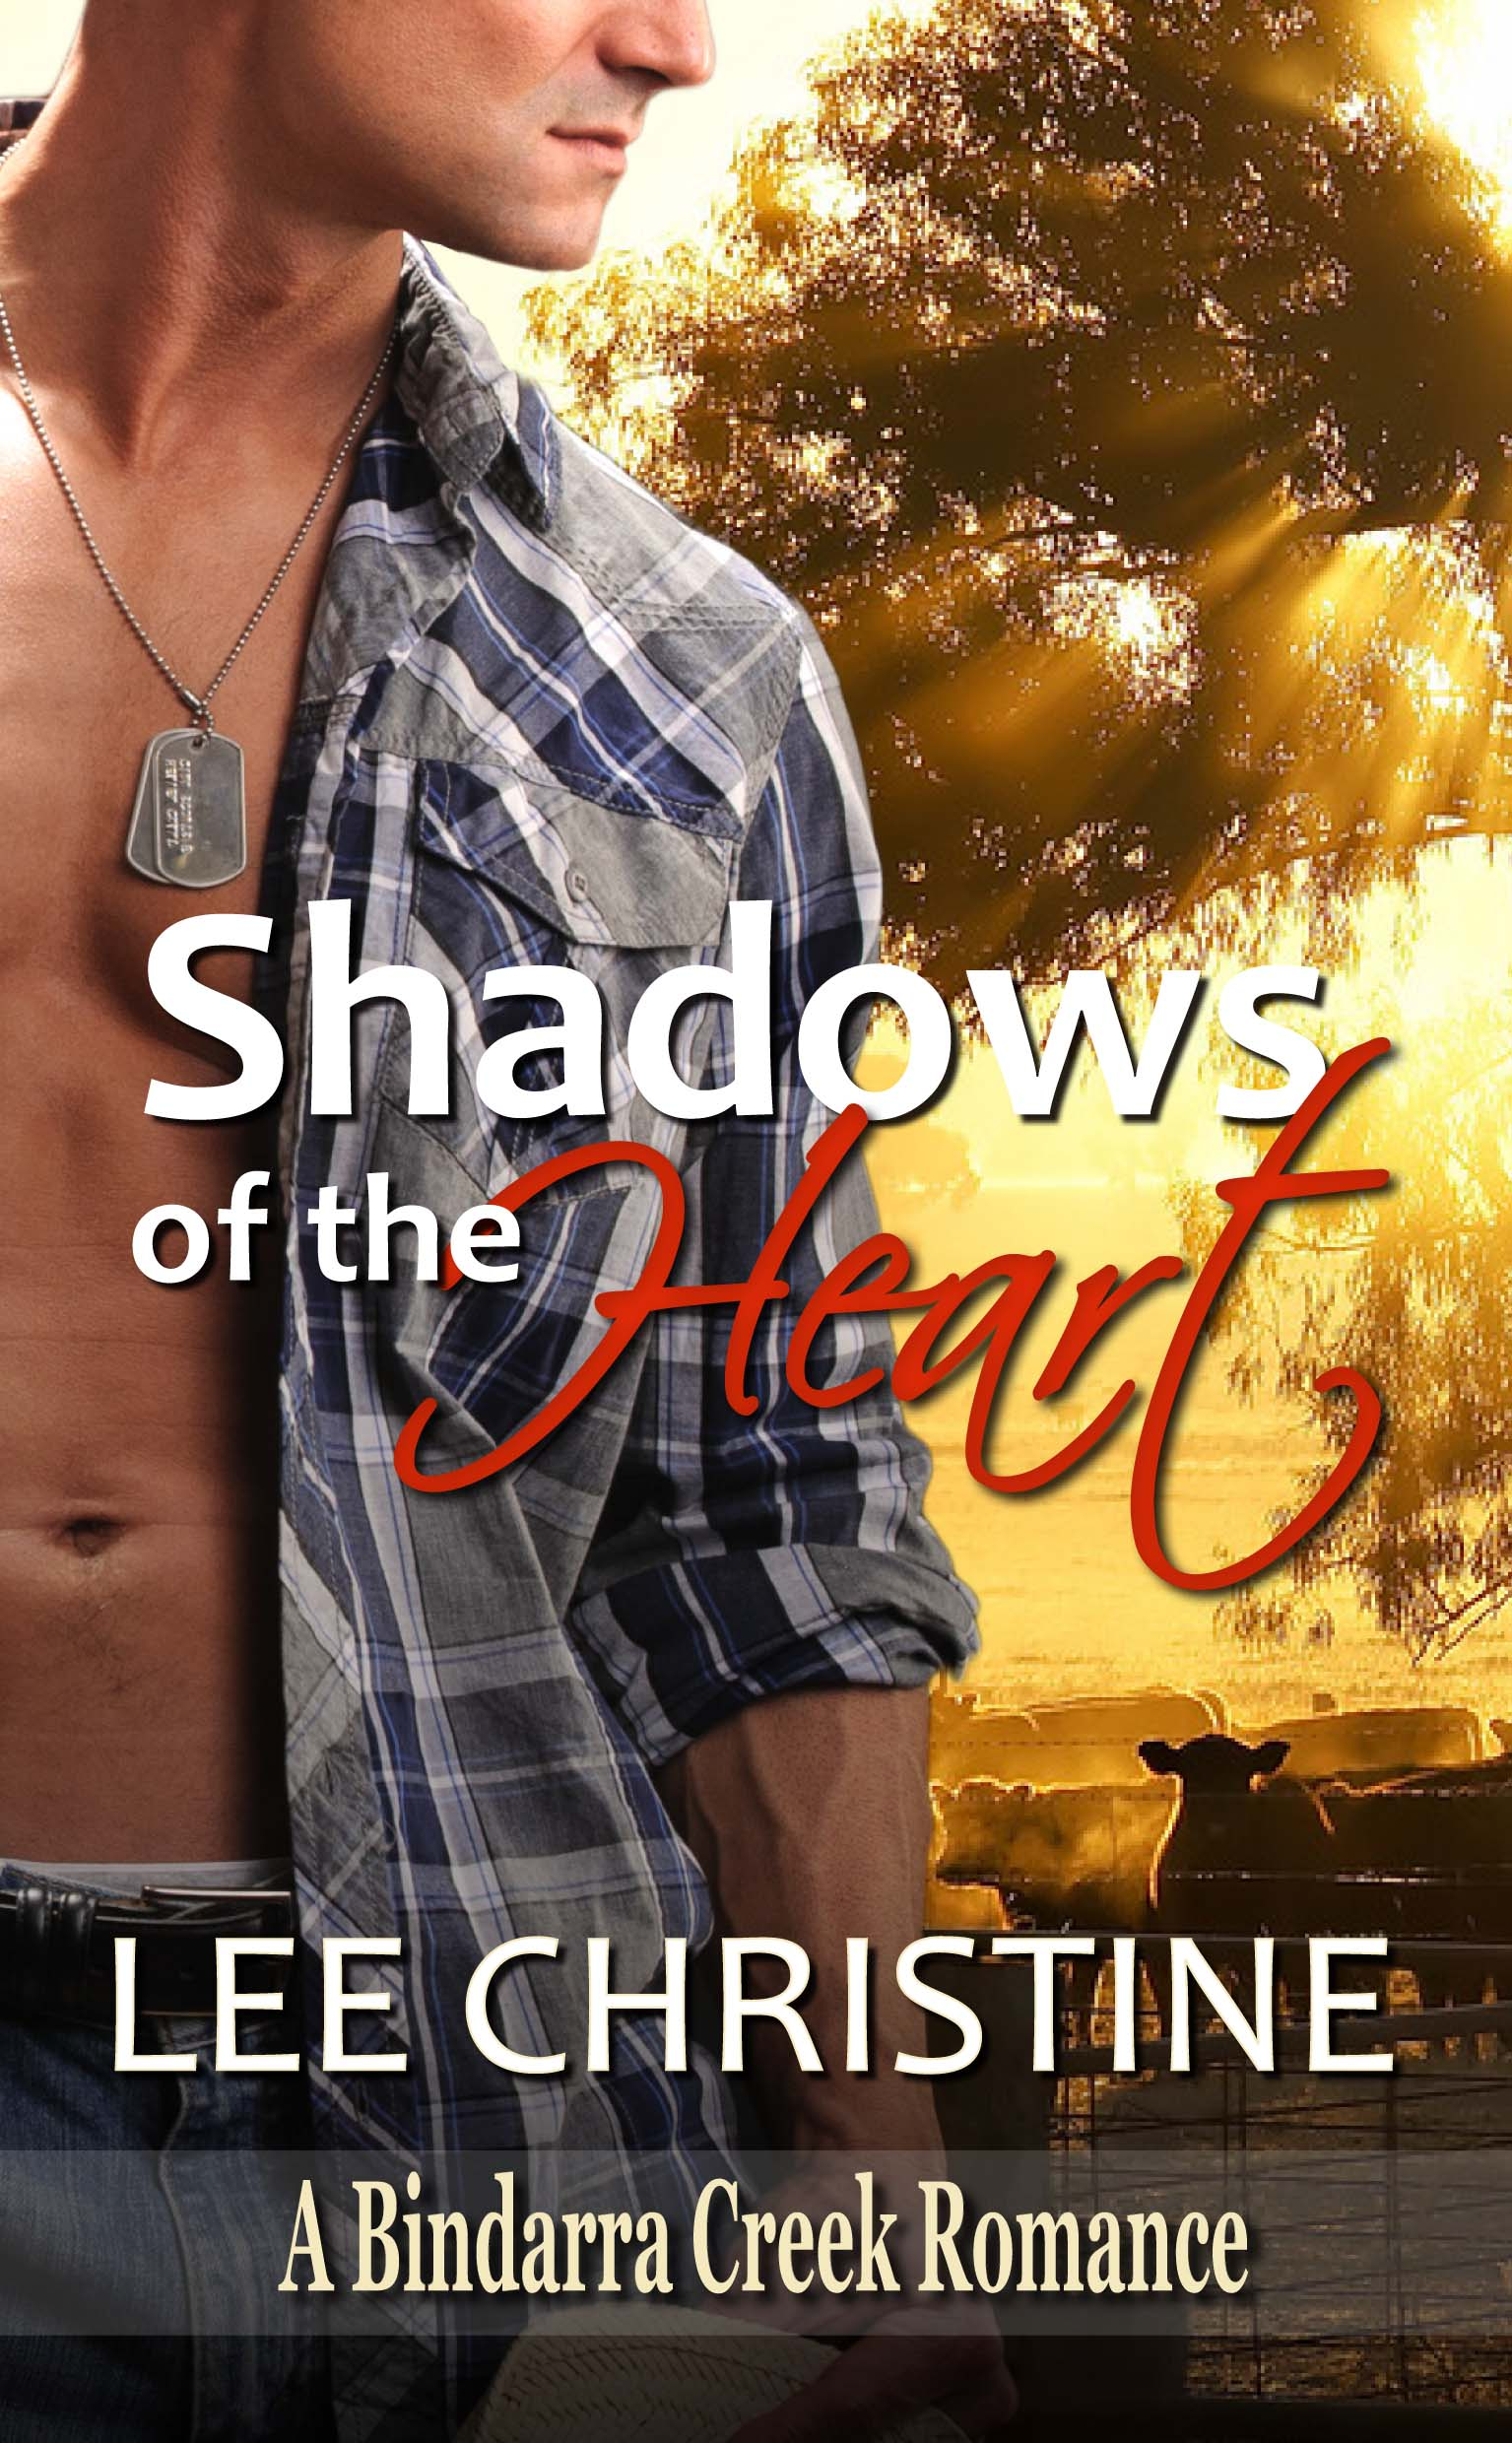 Shadows of the Heart by Lee Christine